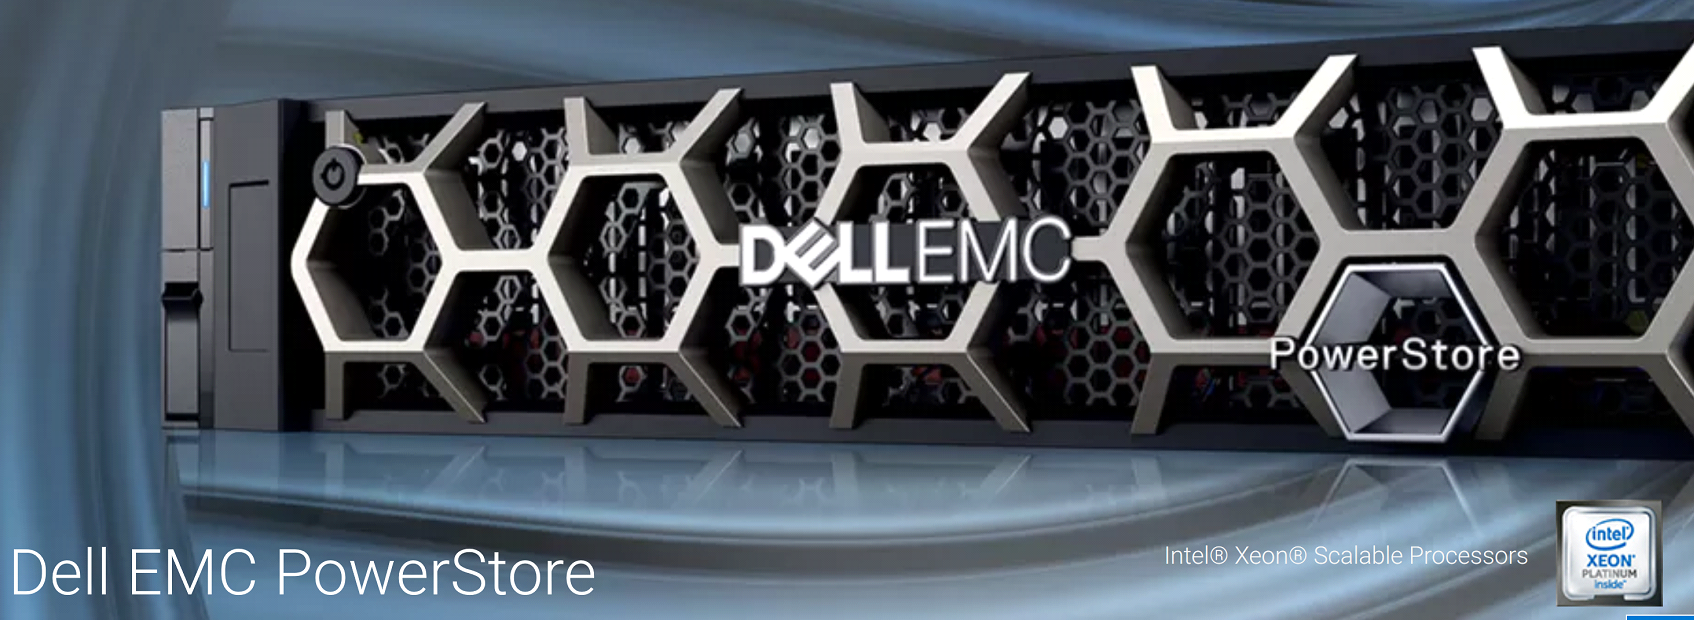 dellpowerstore.png